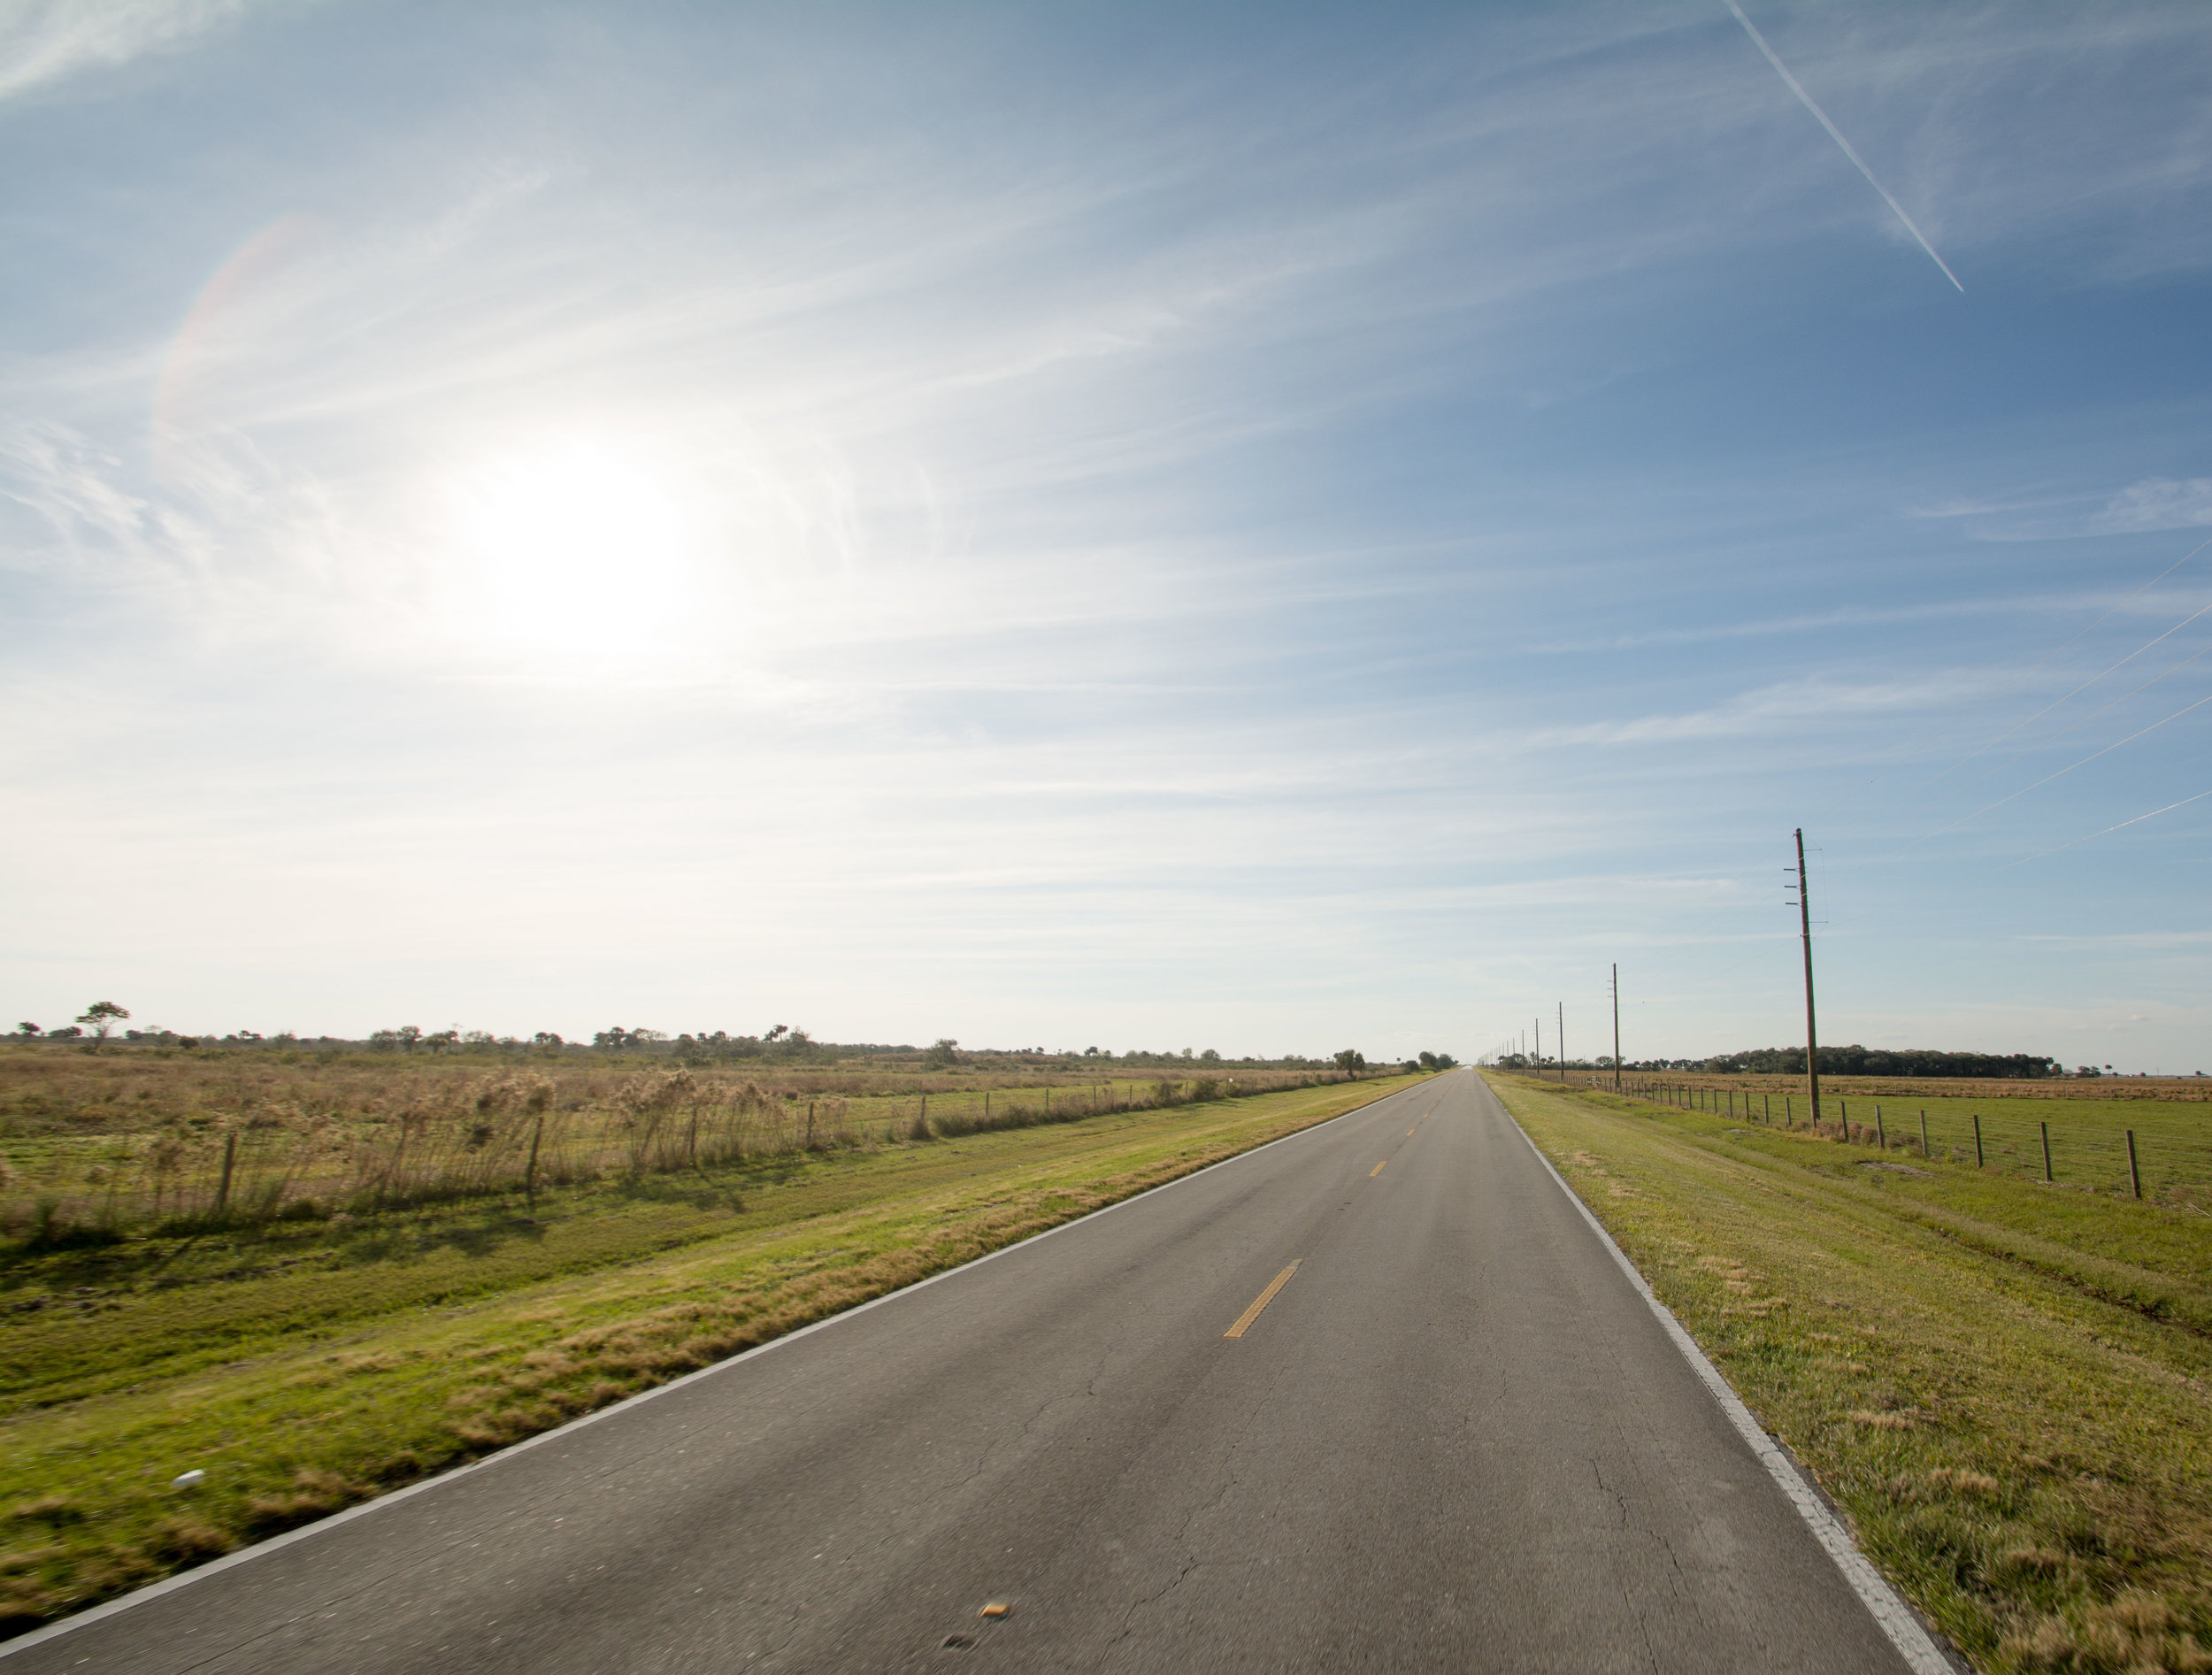 As development encroaches on rural land, it becomes harder to find two-lane roads surrounded by farm land in much of Florida.